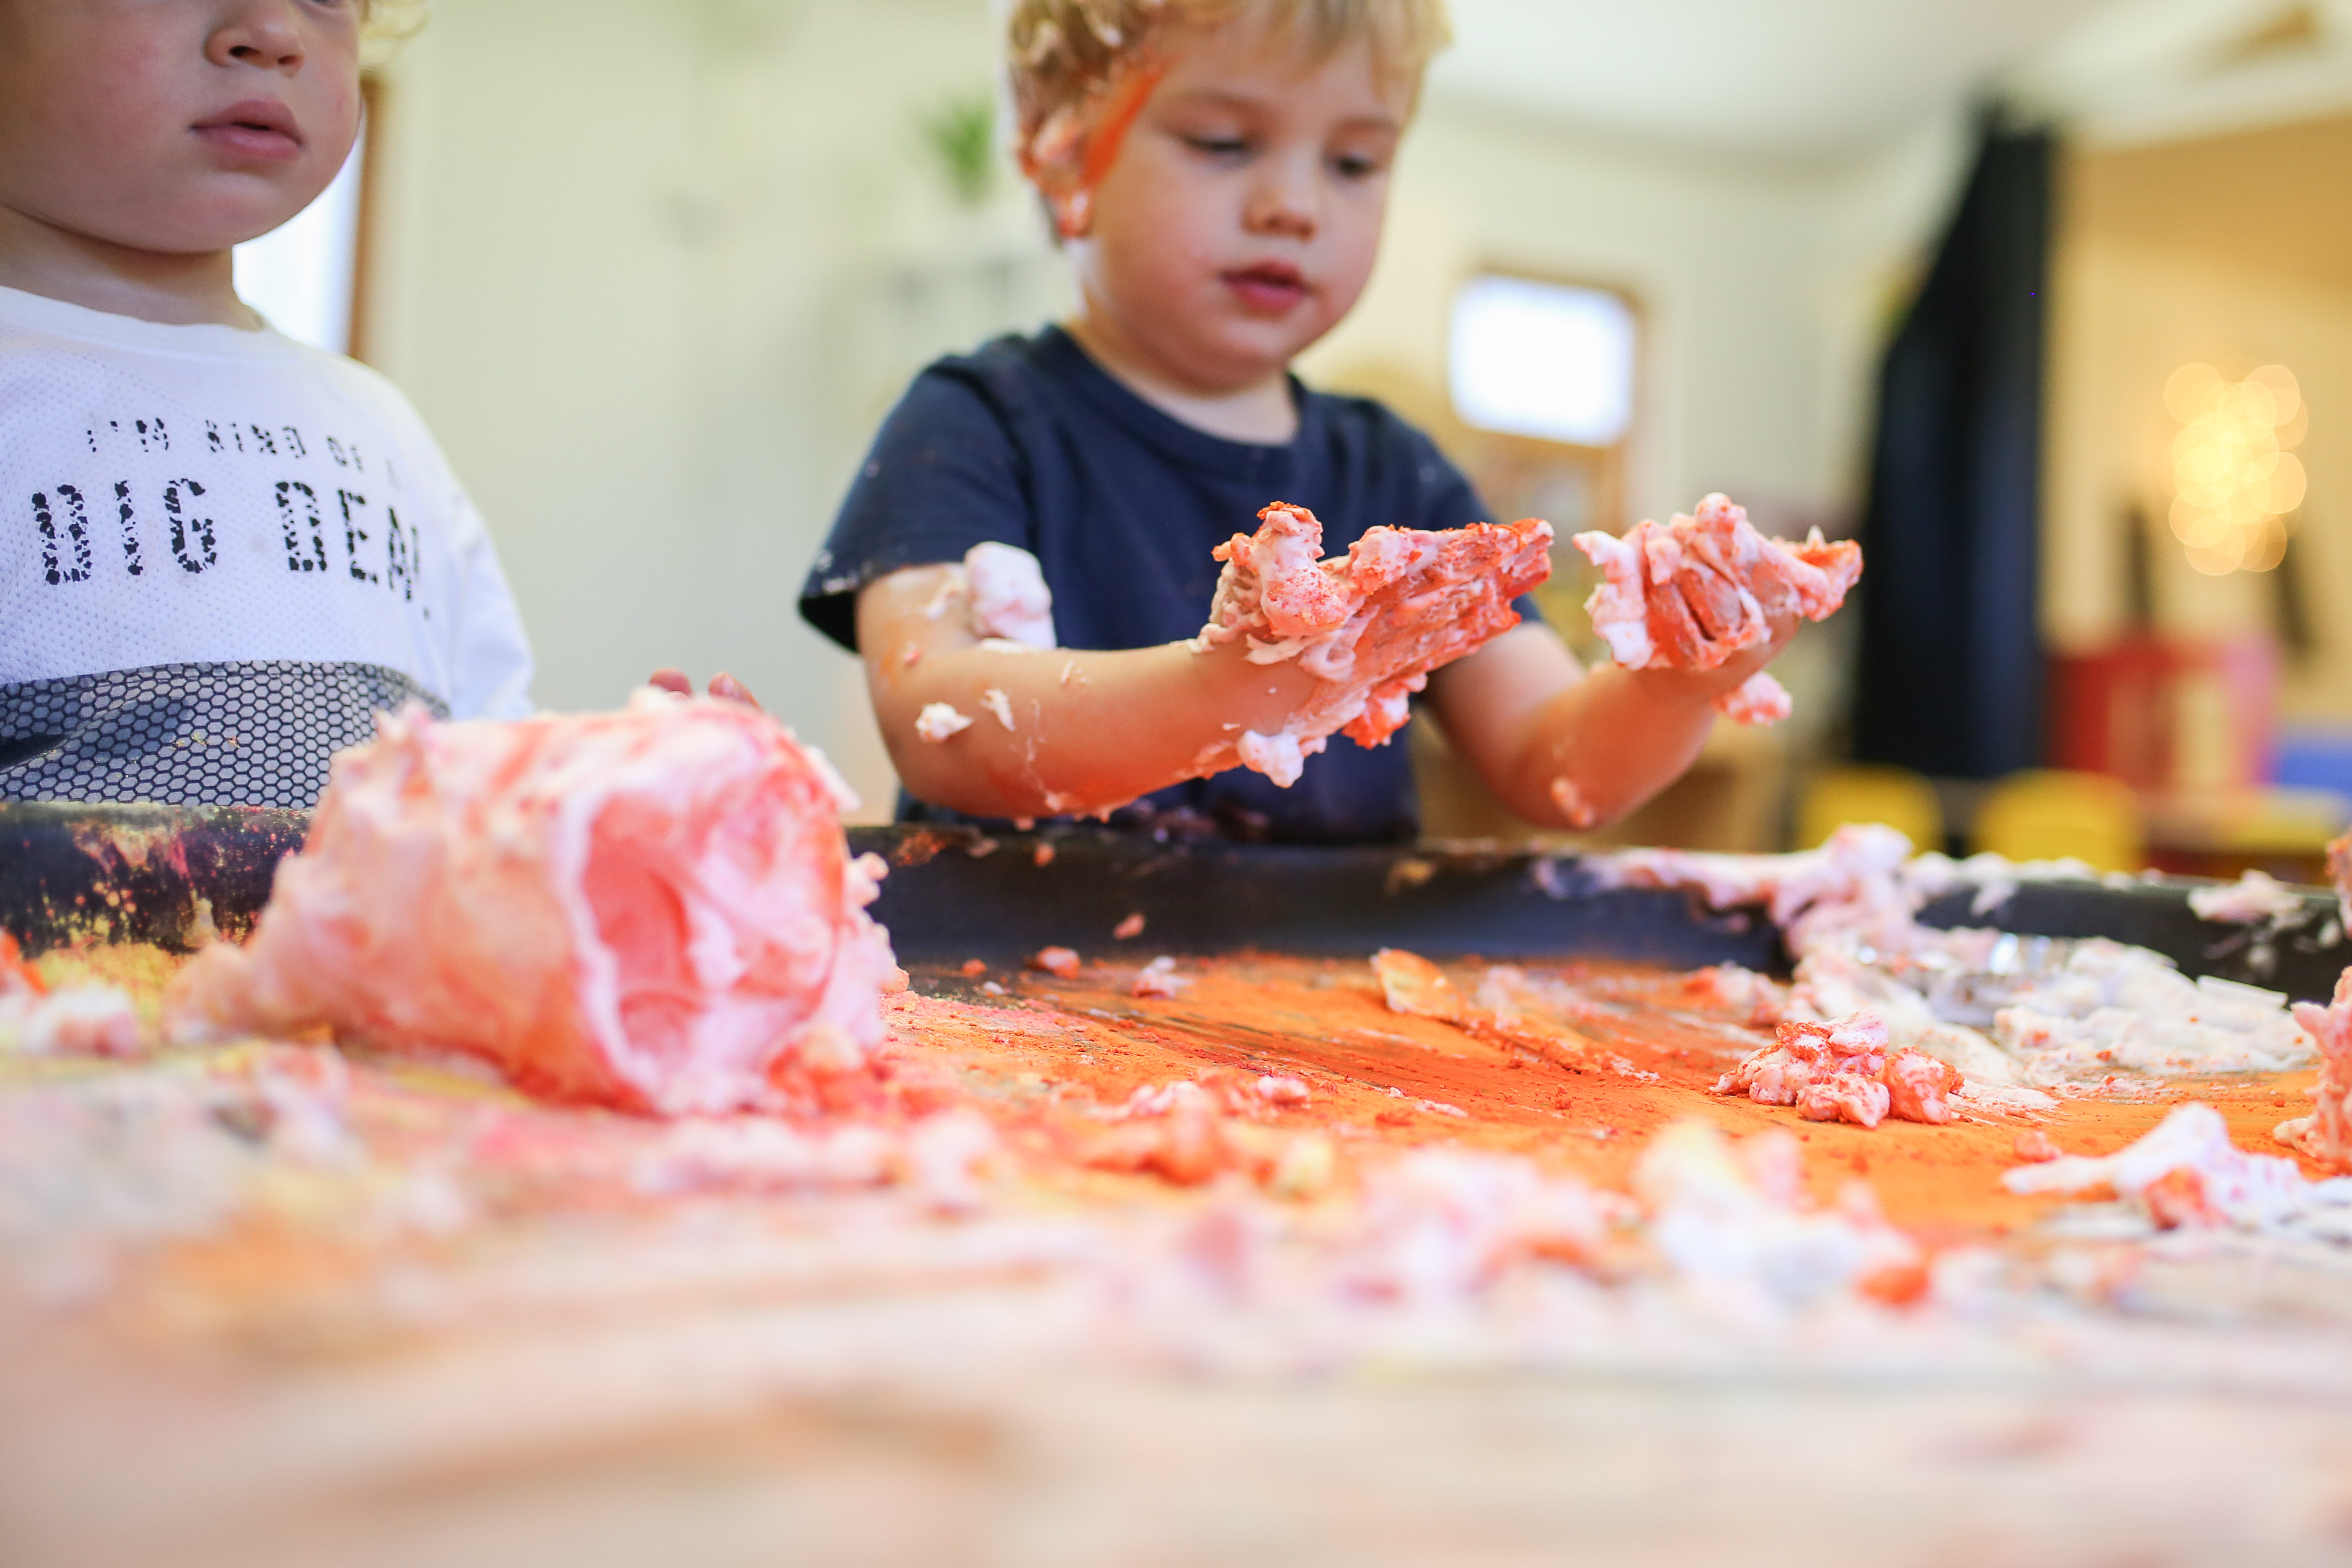 Messy play in the chickenrun